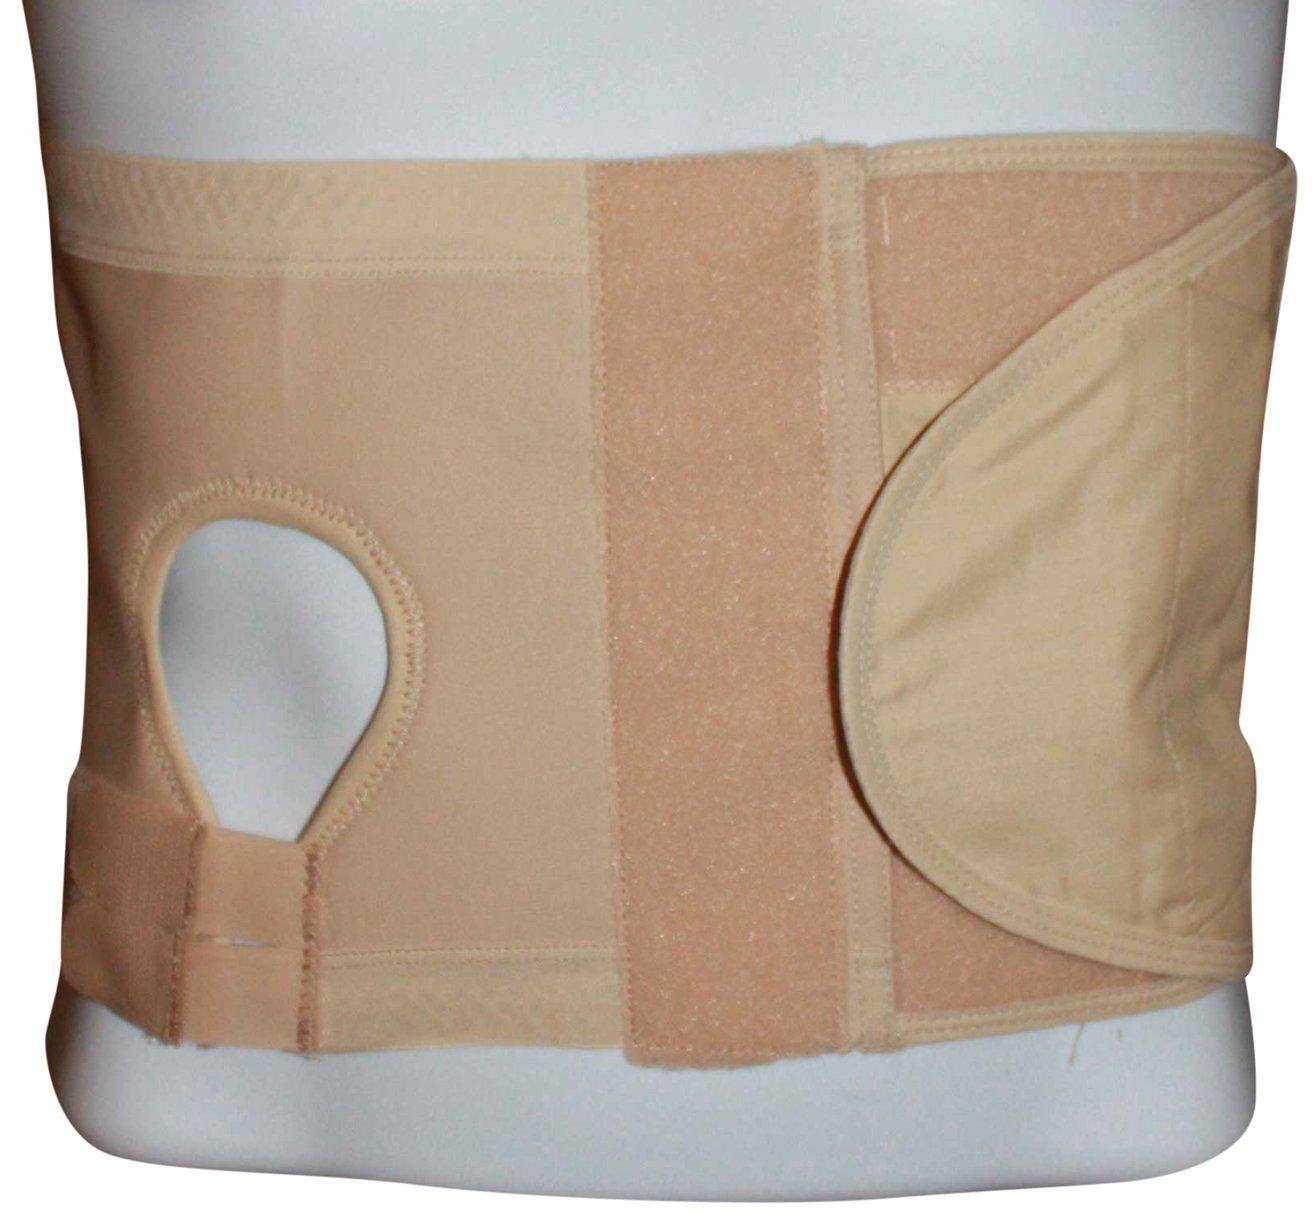 Safe n' Simple Right Hernia Support Belt with Adjustable Hole, 20cm, Beige, X-Large